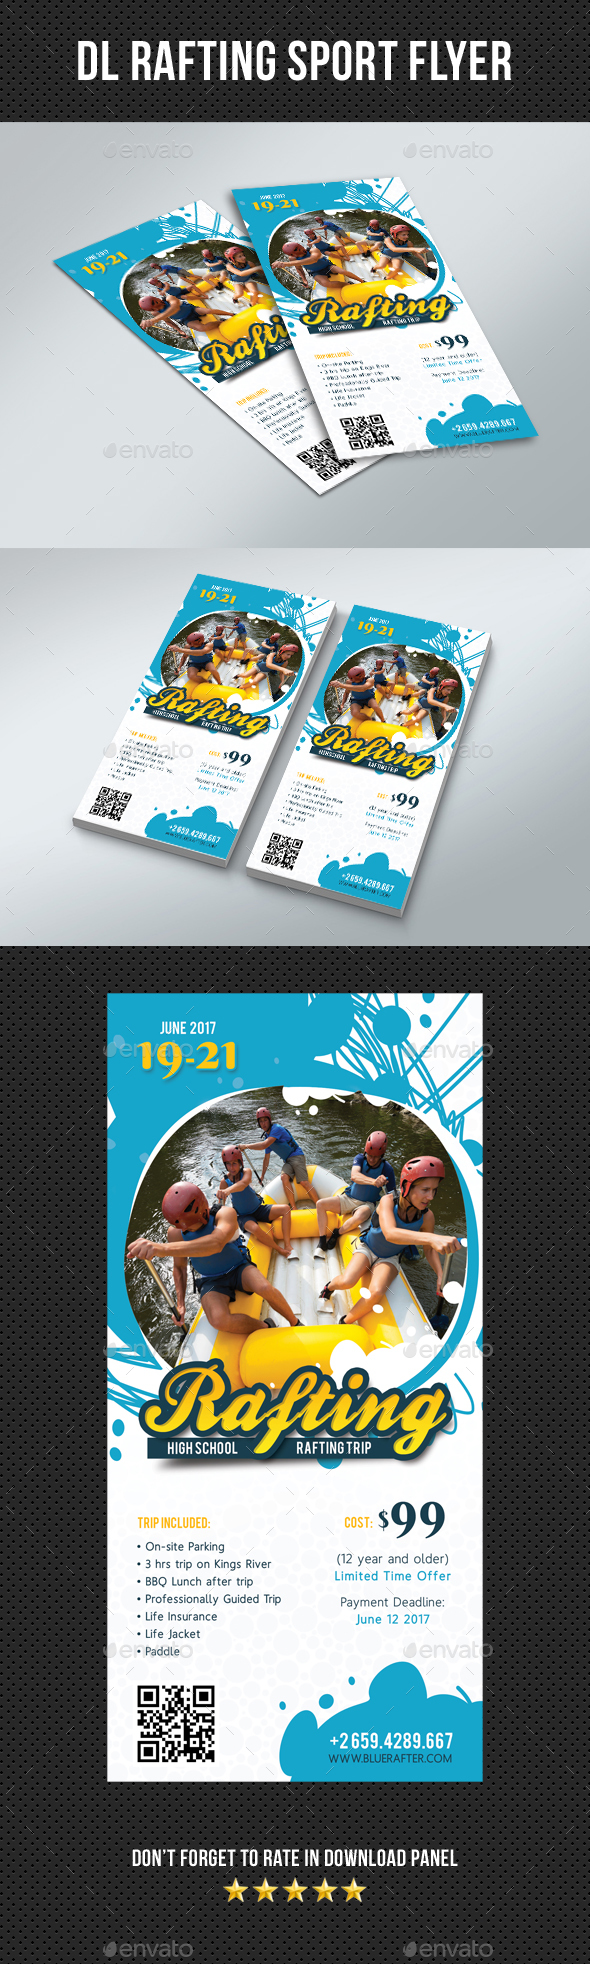 DL Rafting Flyer V1 - Sports Events